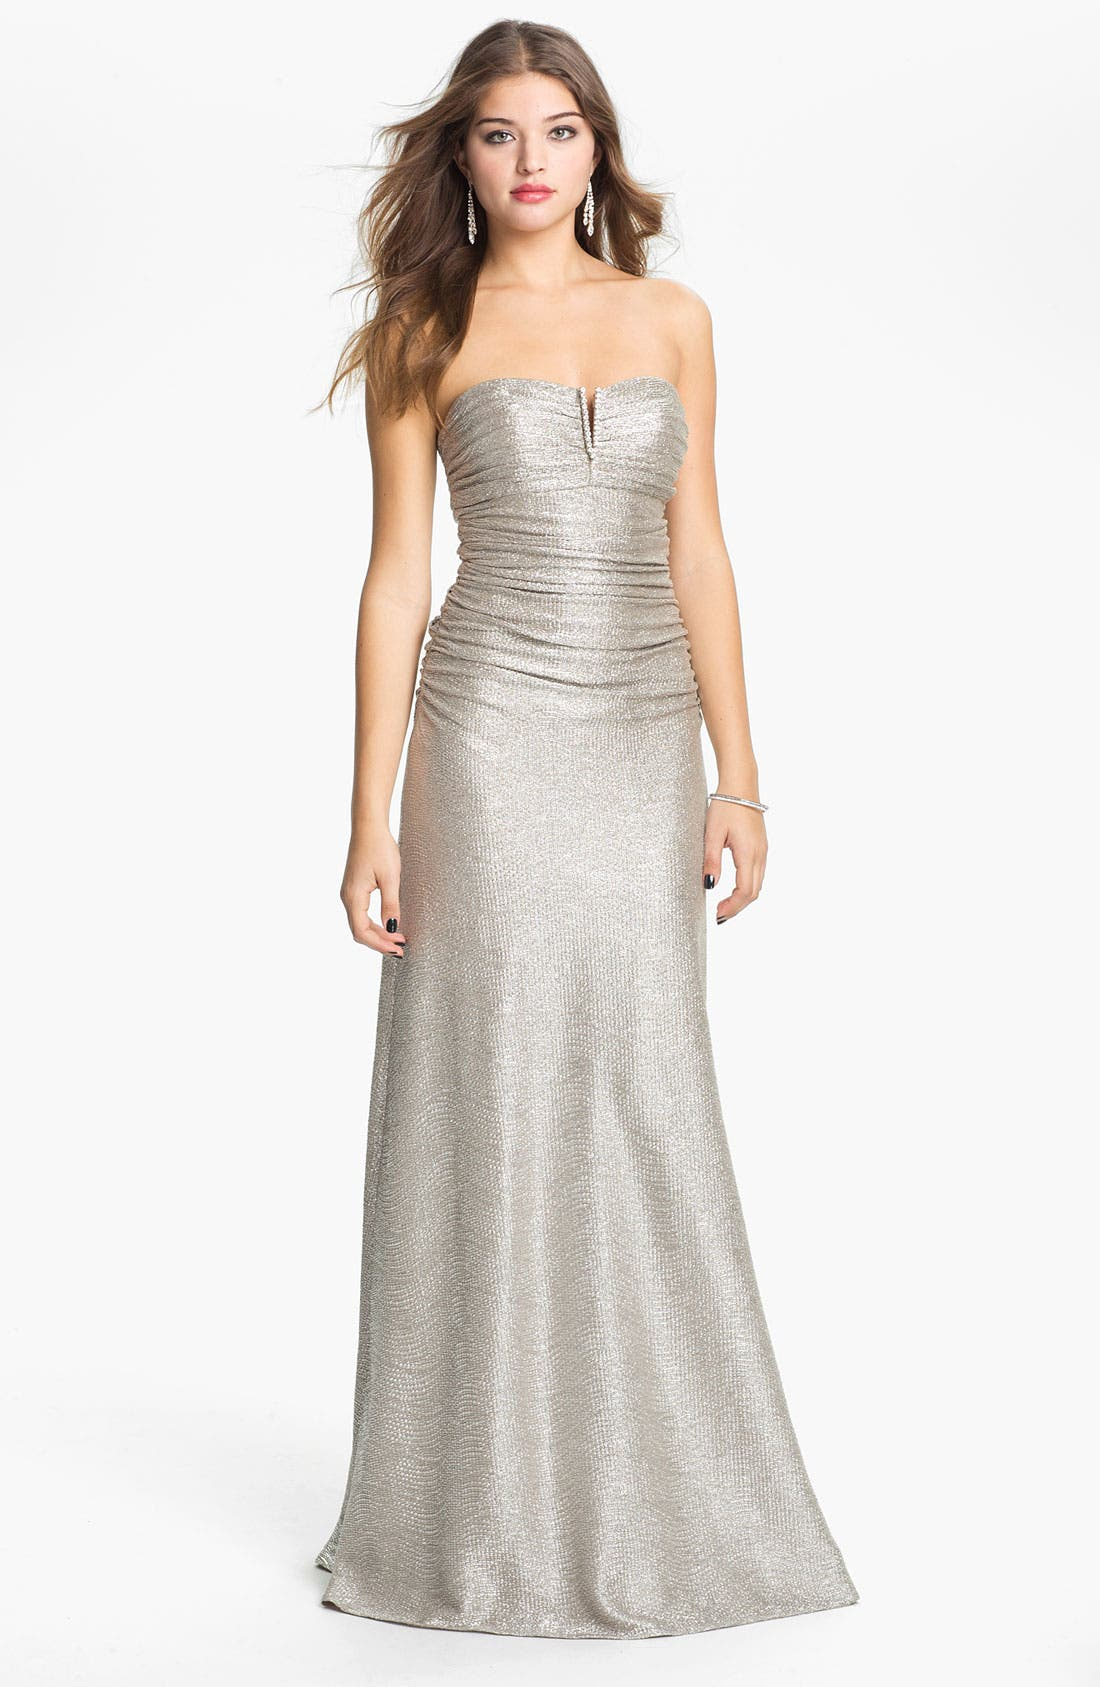 Alternate Image 1 Selected - Hailey by Adrianna Papell Metallic Jersey Gown (Online Exclusive)